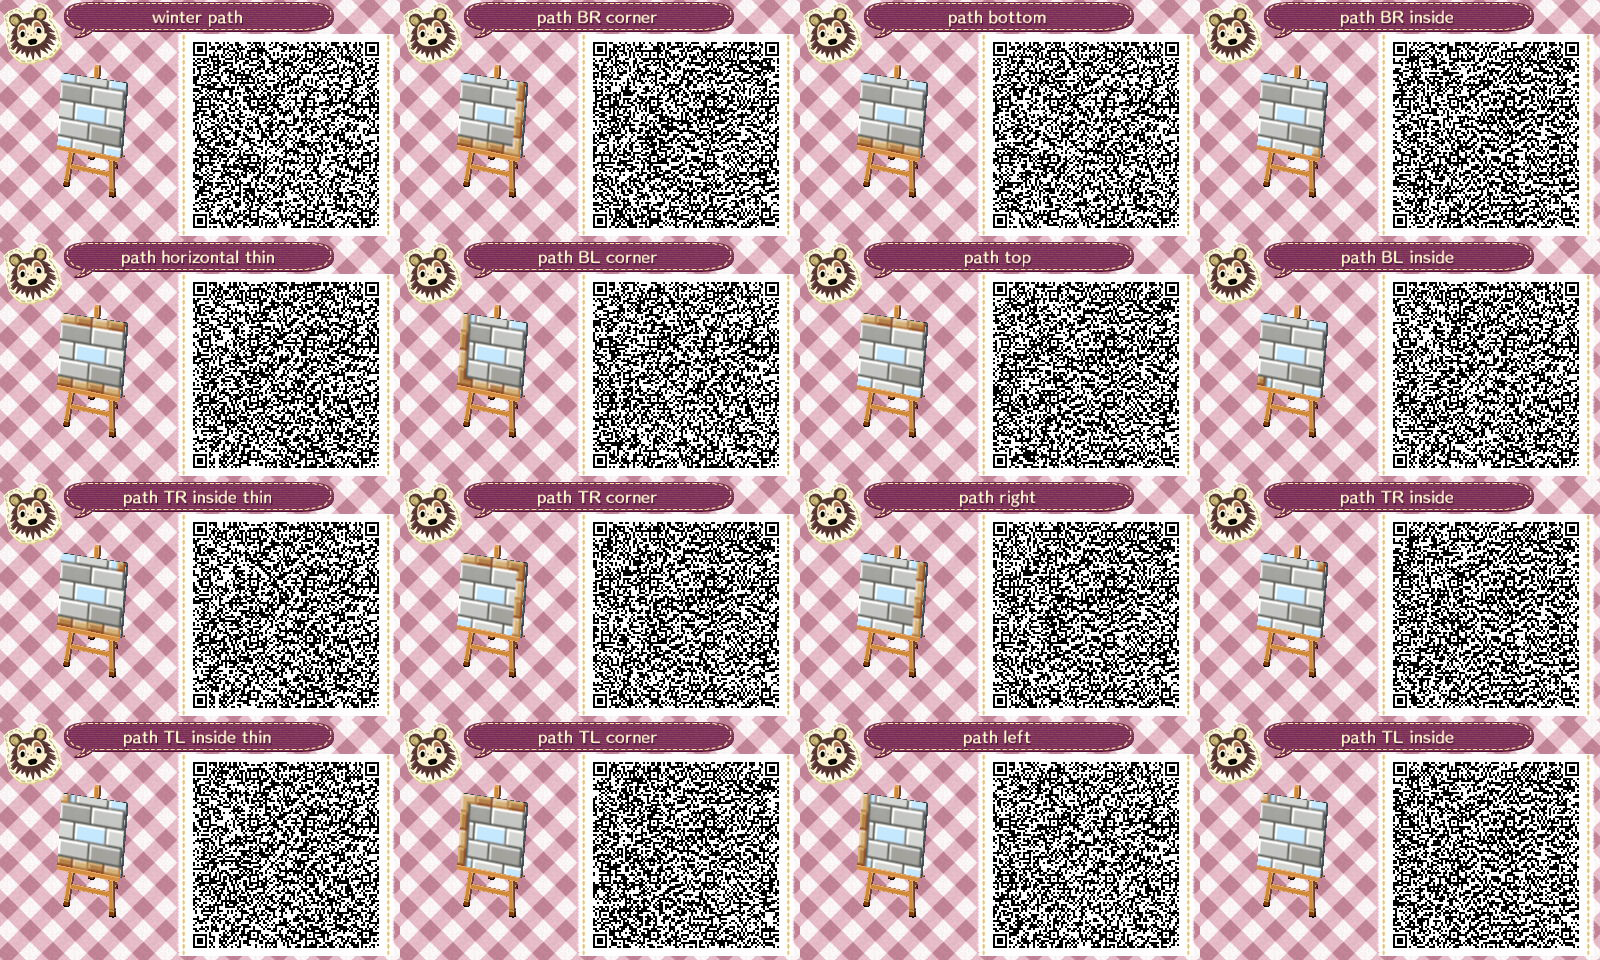 Pin By Rebecca Diane On Acnl Qr Codes Animal Crossing Qr Qr Codes Animals Qr Codes Animal Crossing